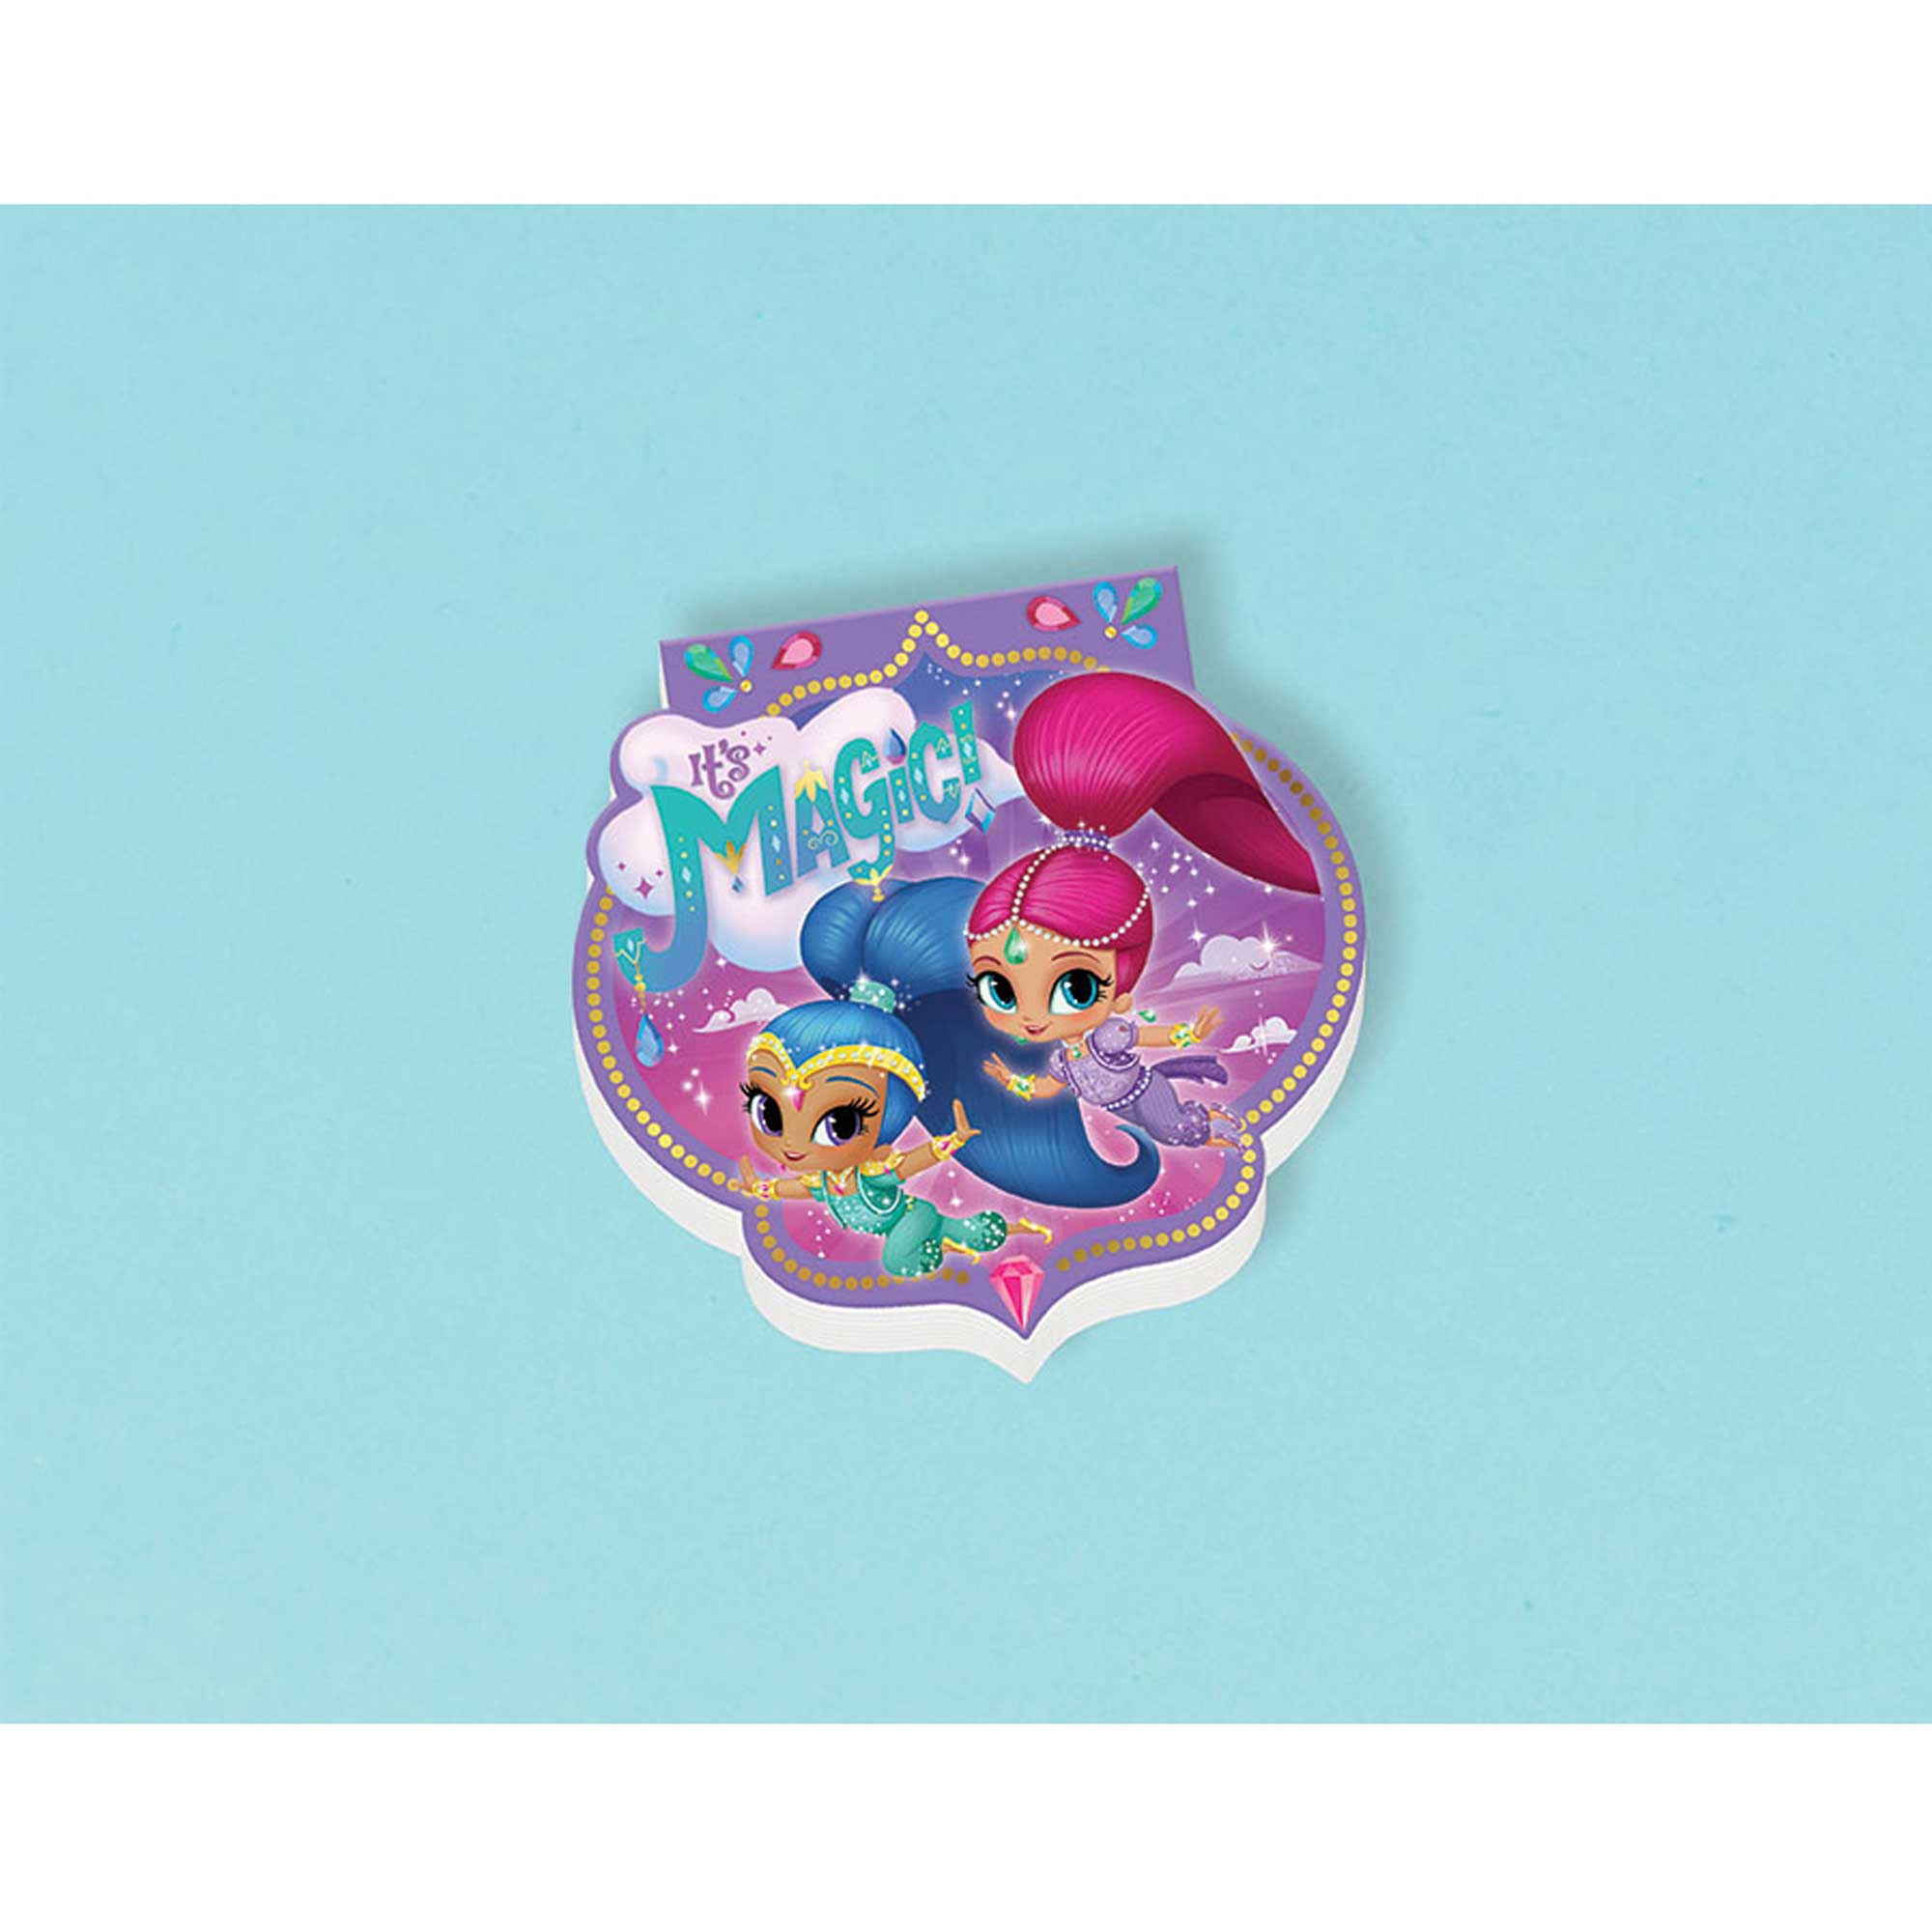 Shimmer and Shine Die Cut Notepad Favor